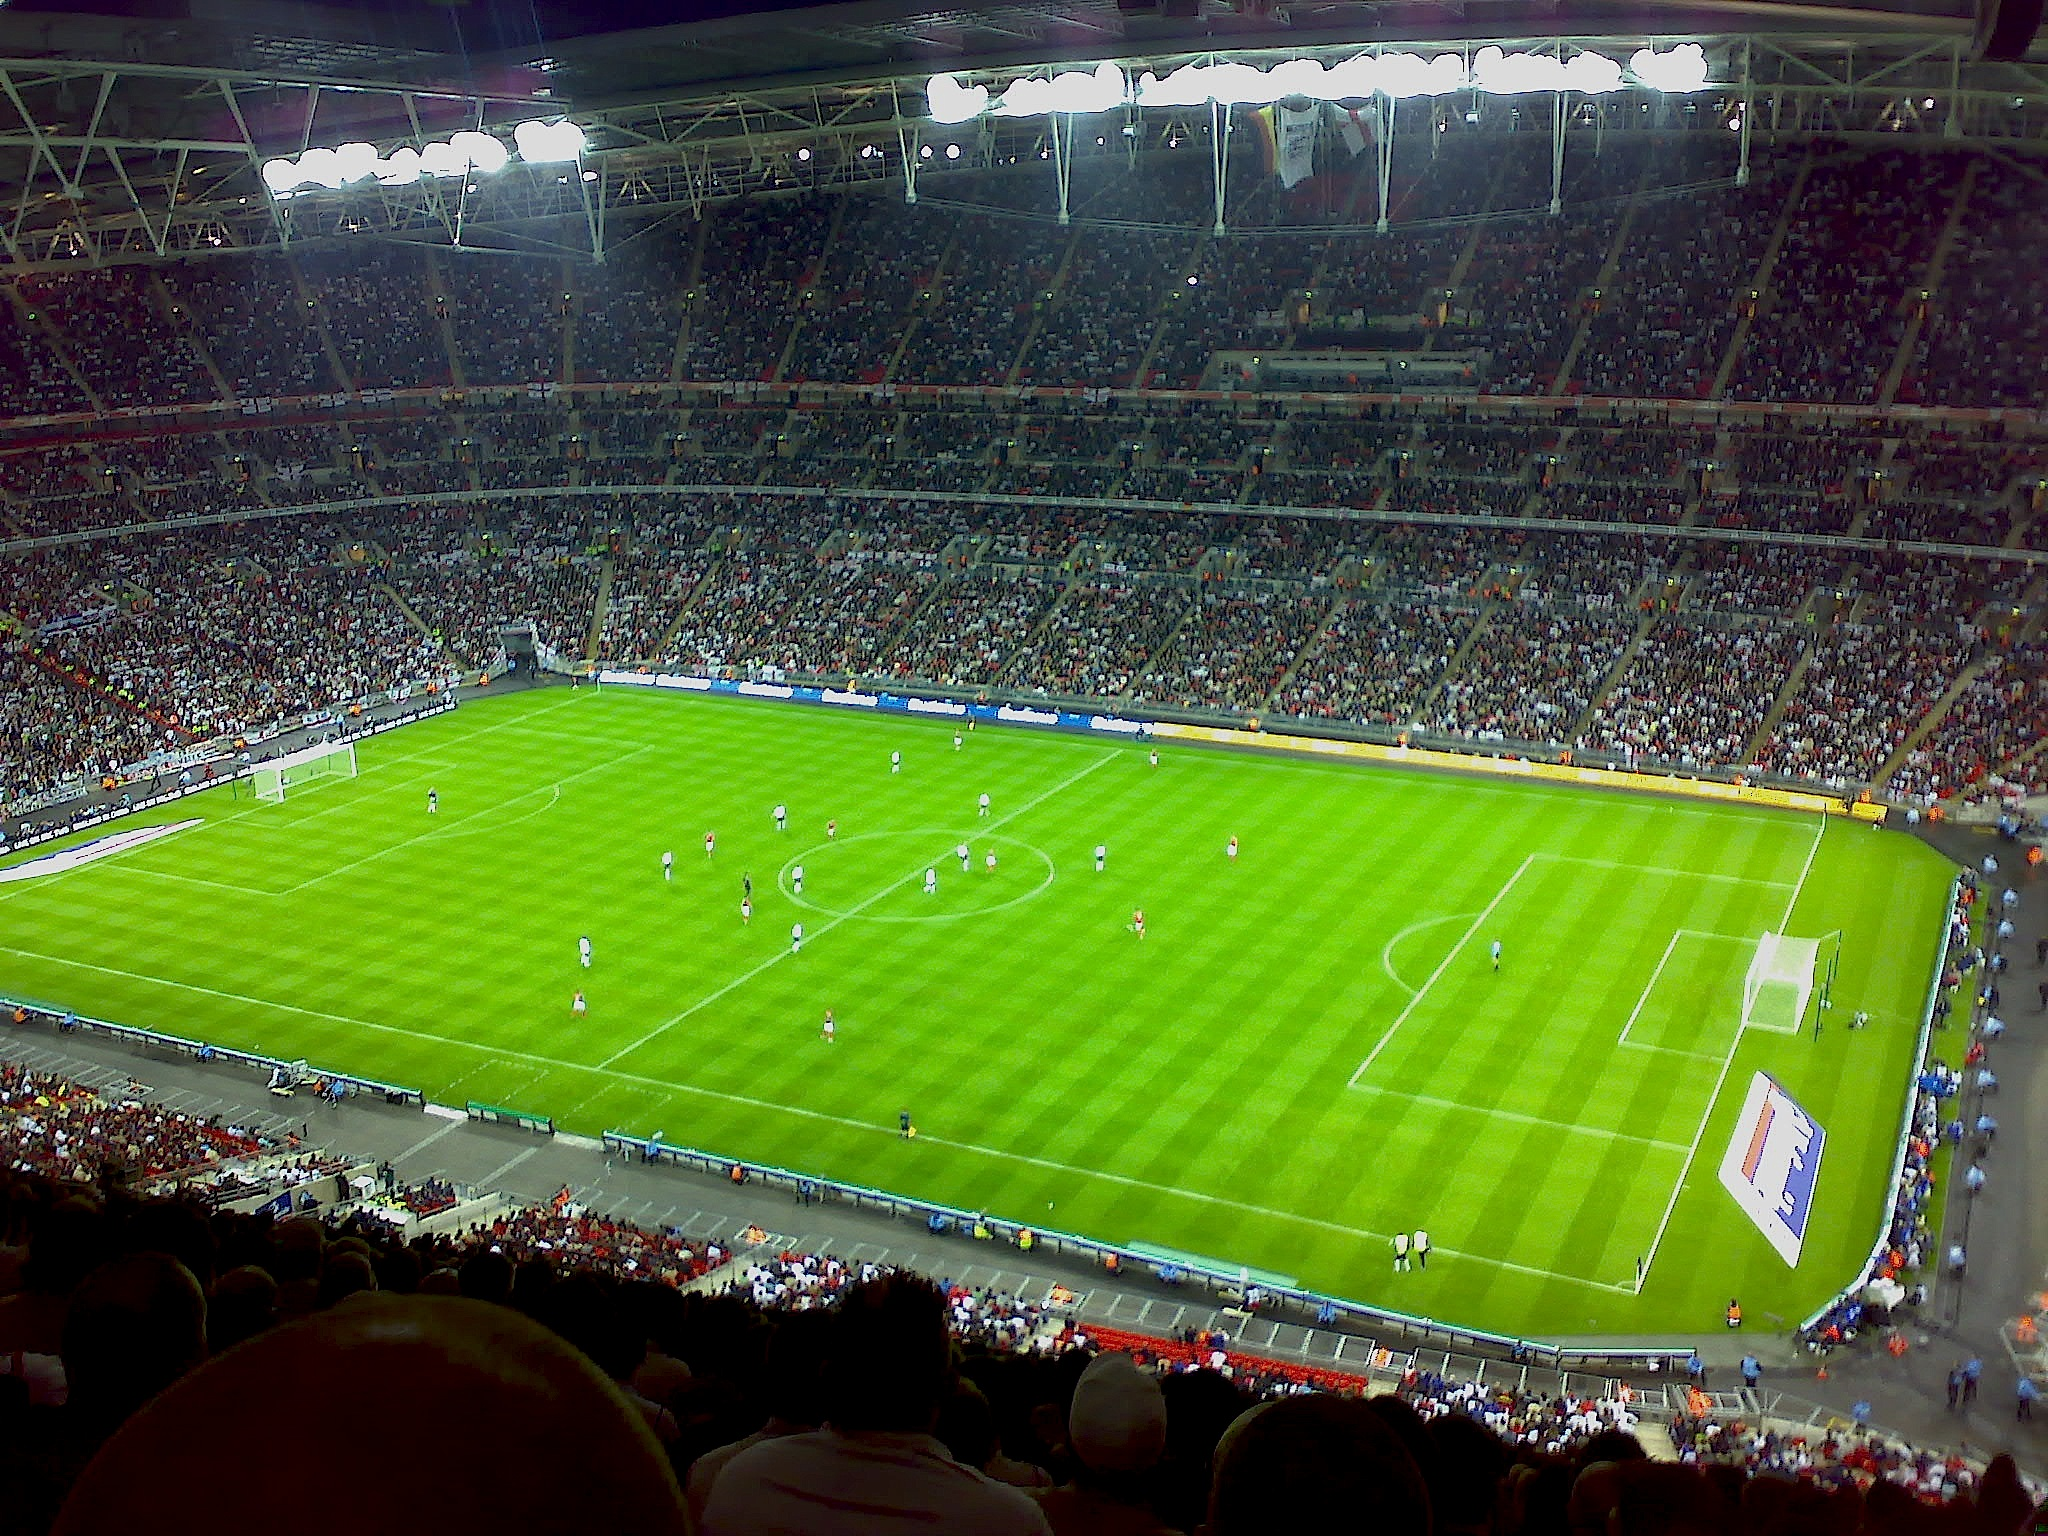 http://upload.wikimedia.org/wikipedia/commons/3/3b/Wembley_enggermatch.jpg